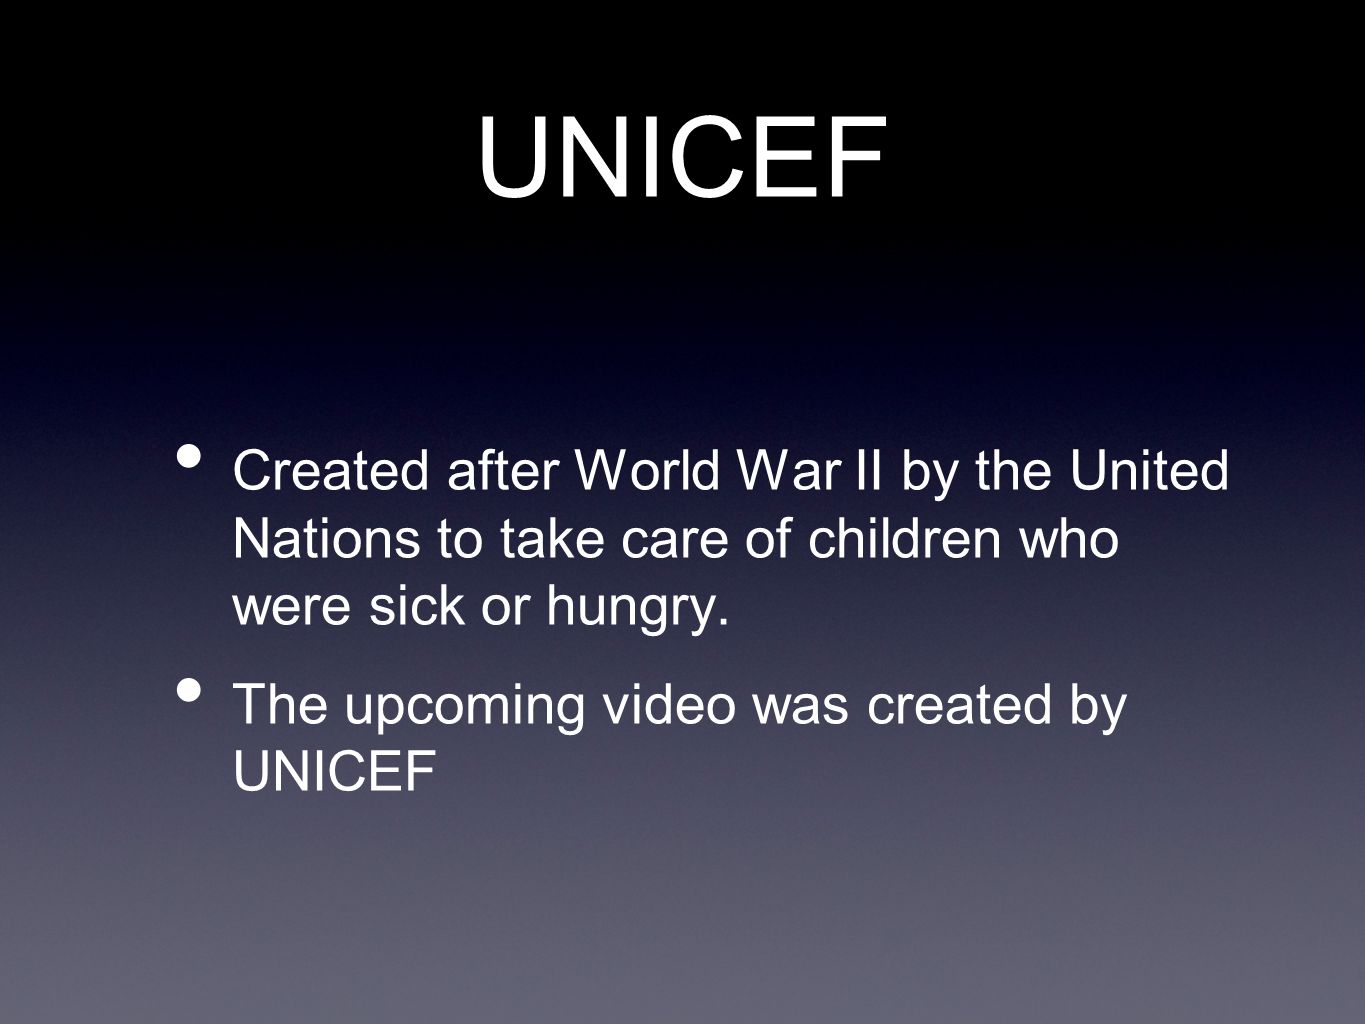 UNICEF Created after World War II by the United Nations to take care of children who were sick or hungry.